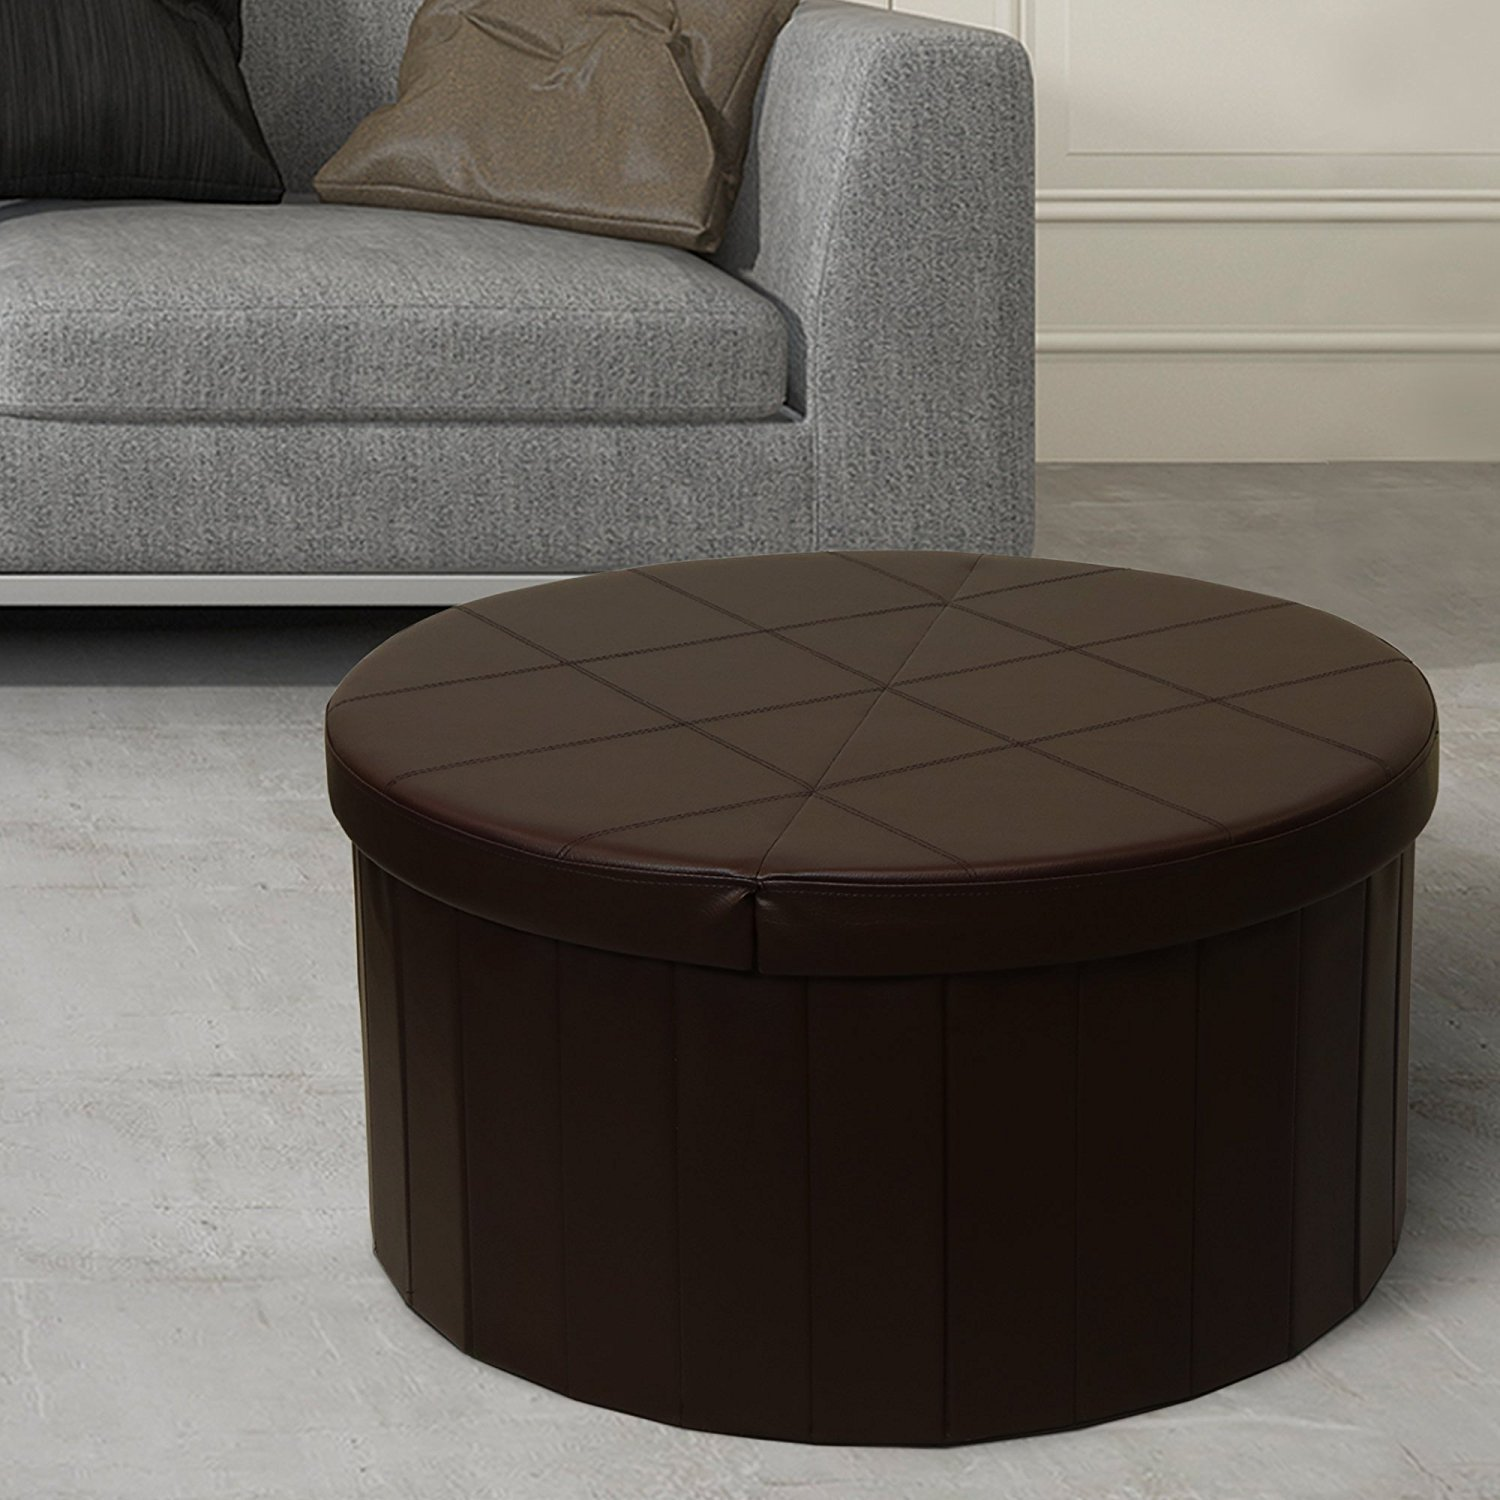 Otto & Ben 30'' Storage Coffee Table with Smart Lift Top Folding Round Faux Leather Trunk Ottomans Bench Foot Rest, Chocolate